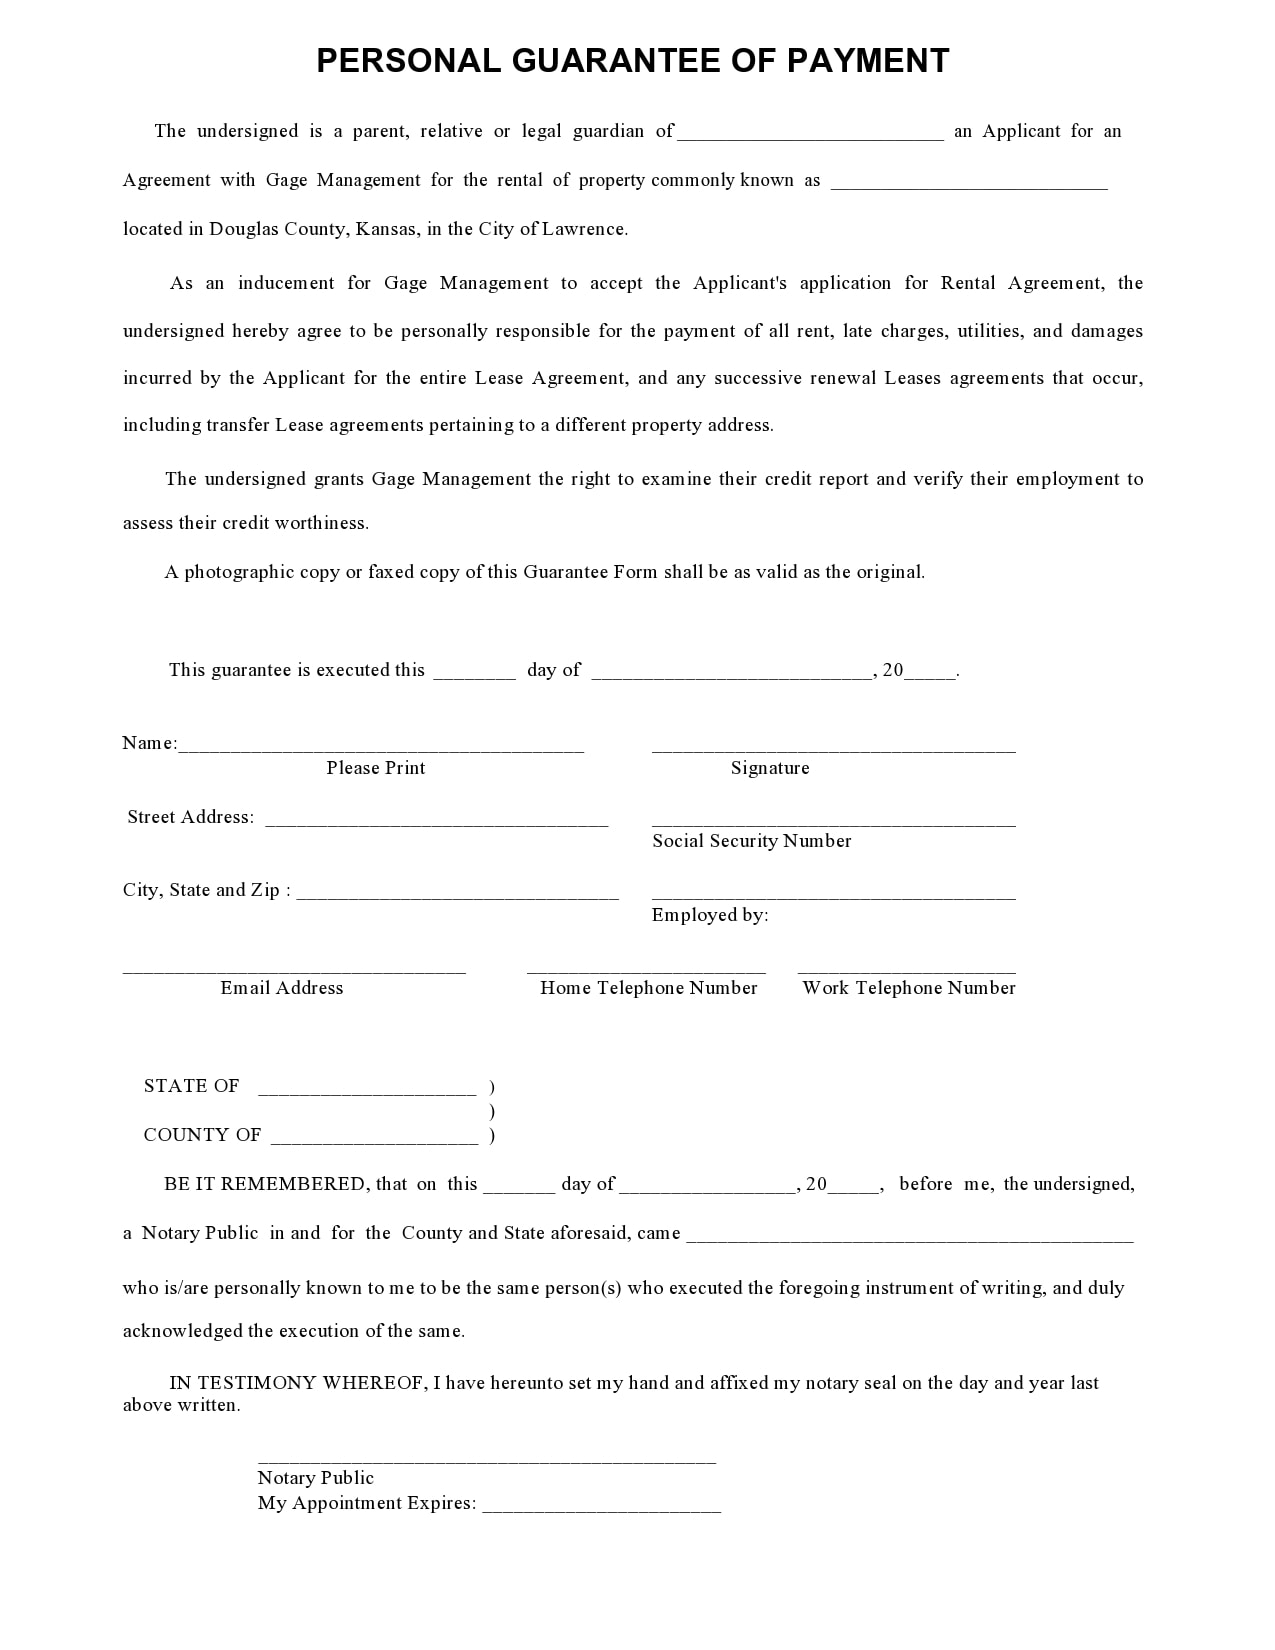 personal guarantee form 20